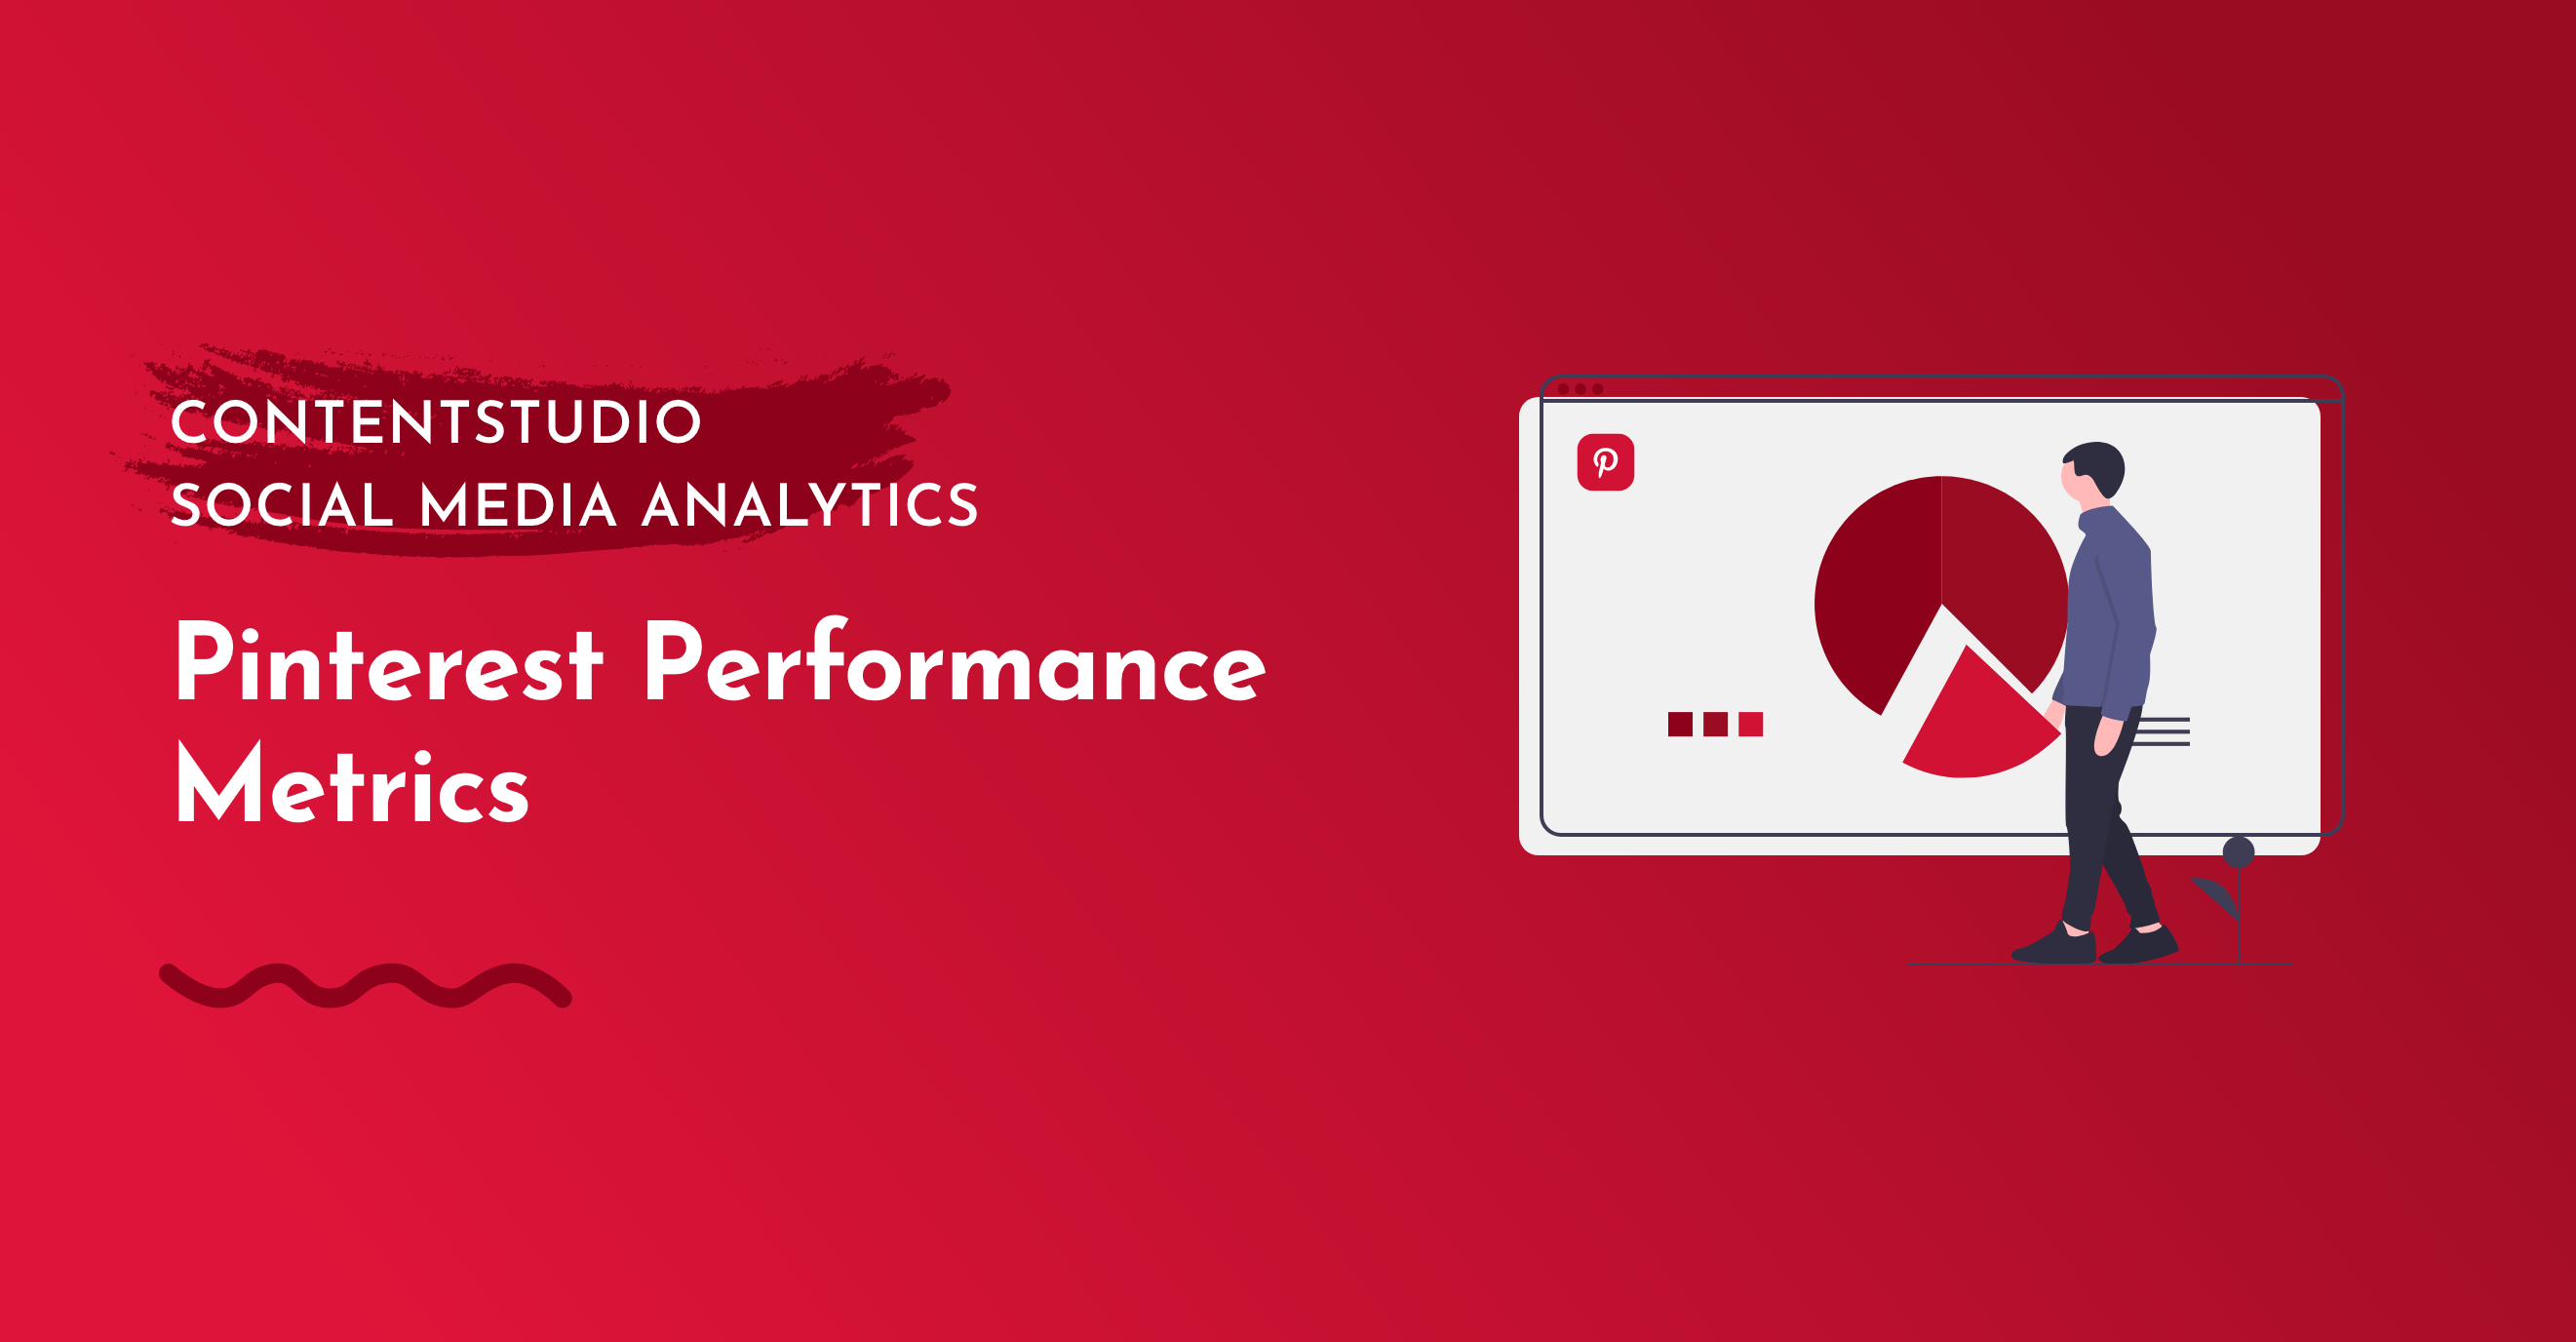 Pinterest Performance Metrics